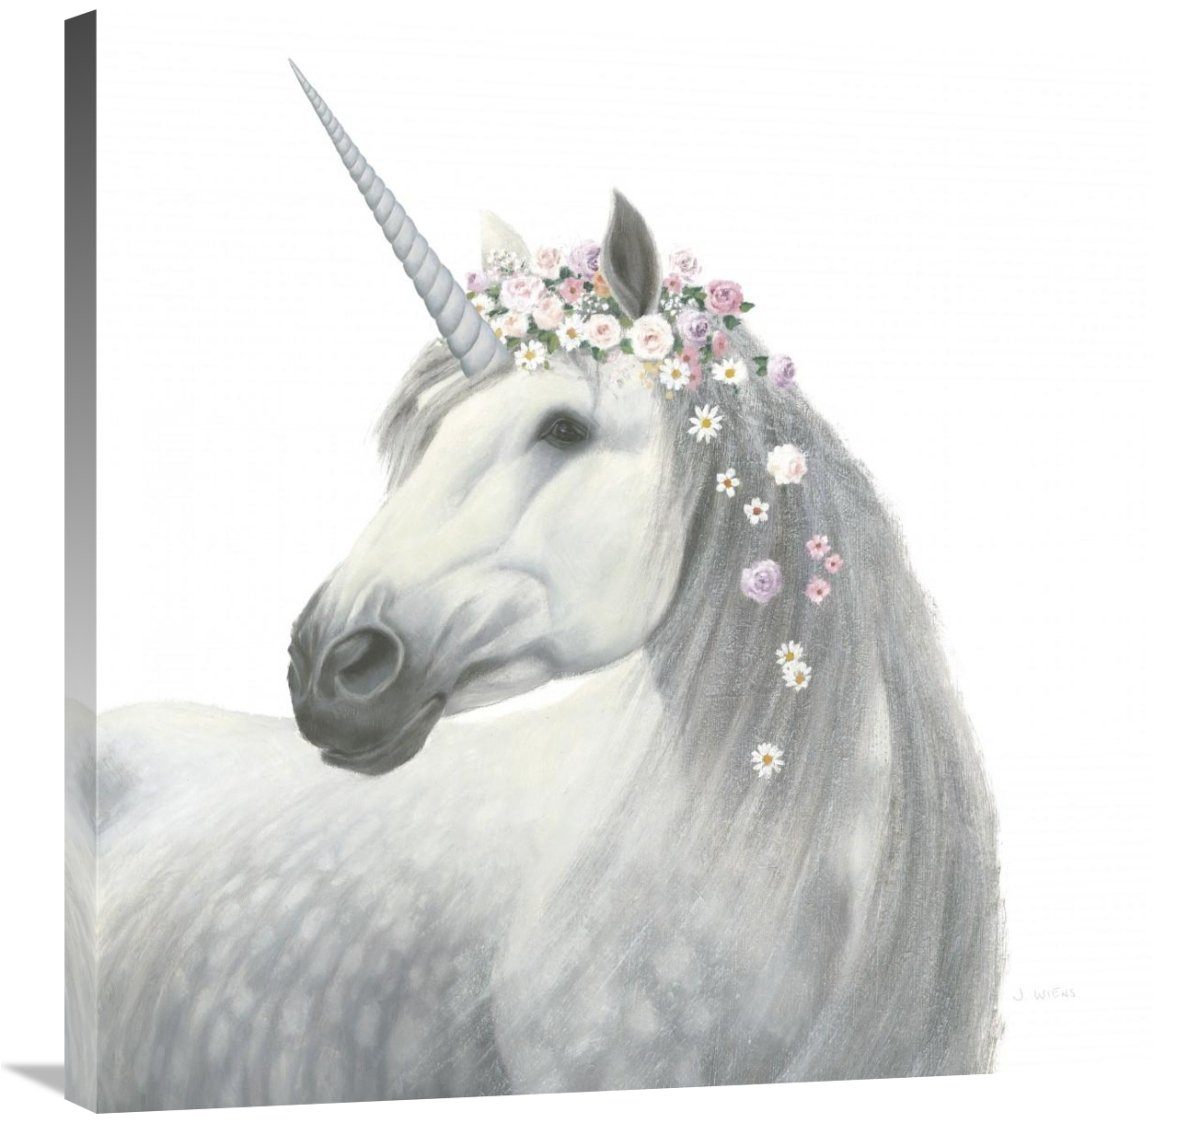 Global Gallery James Wiens, Spirit Unicorn II Square' Giclee Stretched Canvas Artwork, 30 x 30''